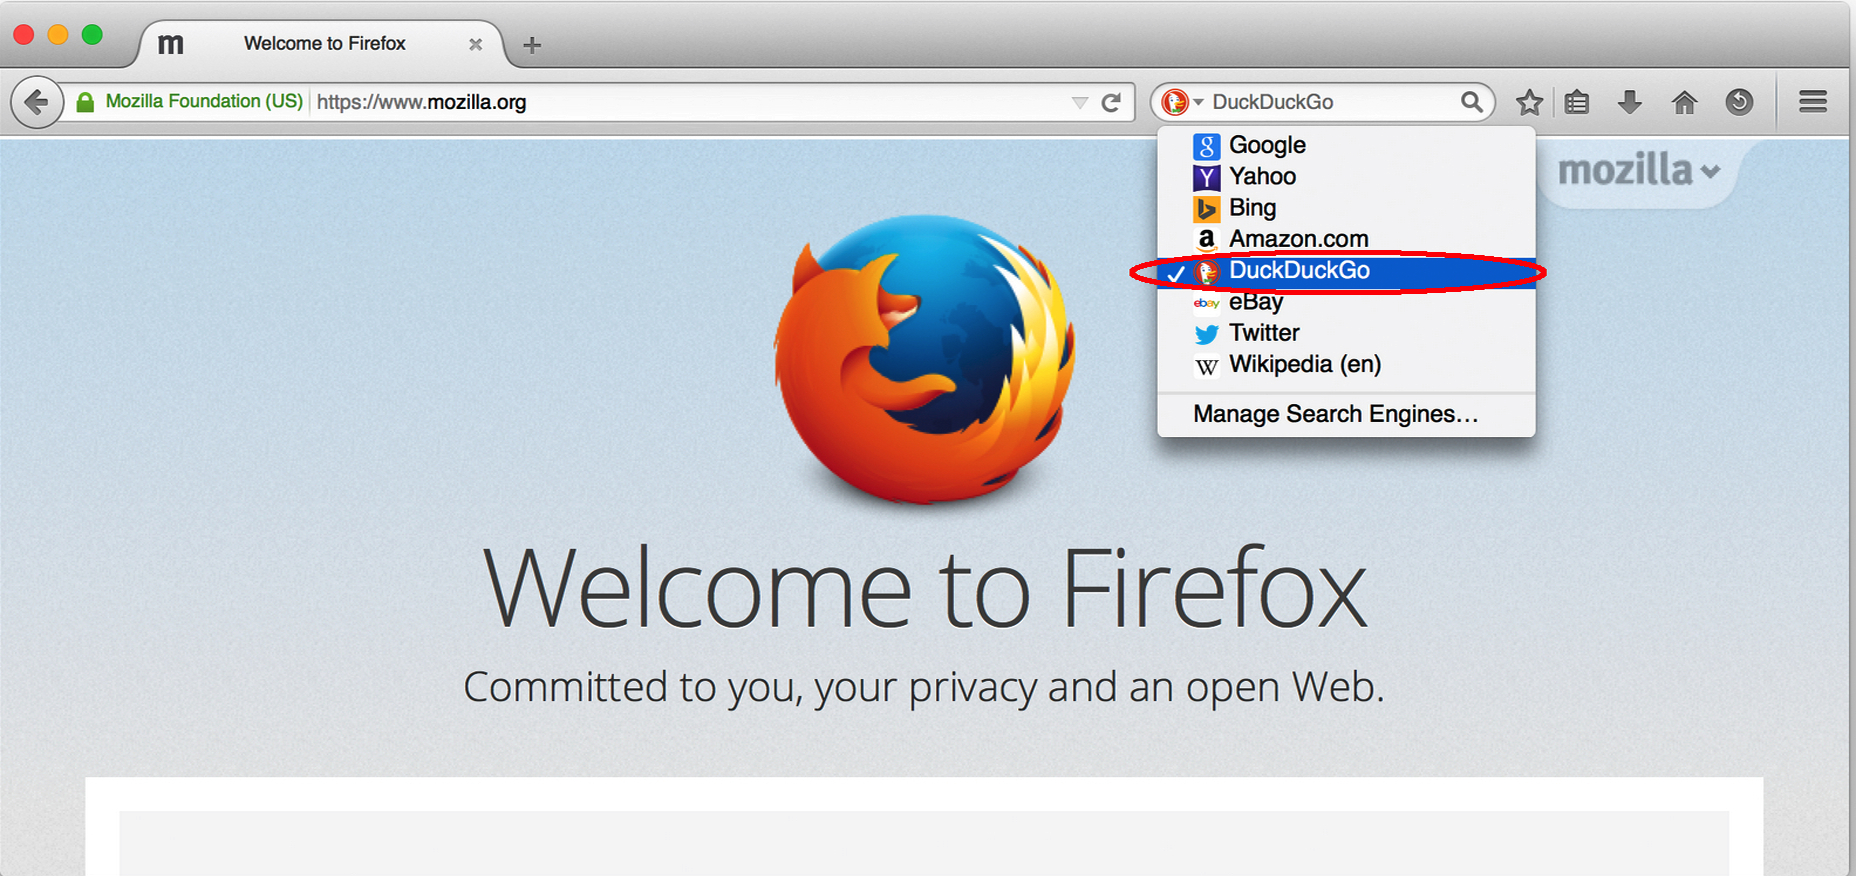 Firefox Fete Ses 10 Ans Section Presse Mozilla